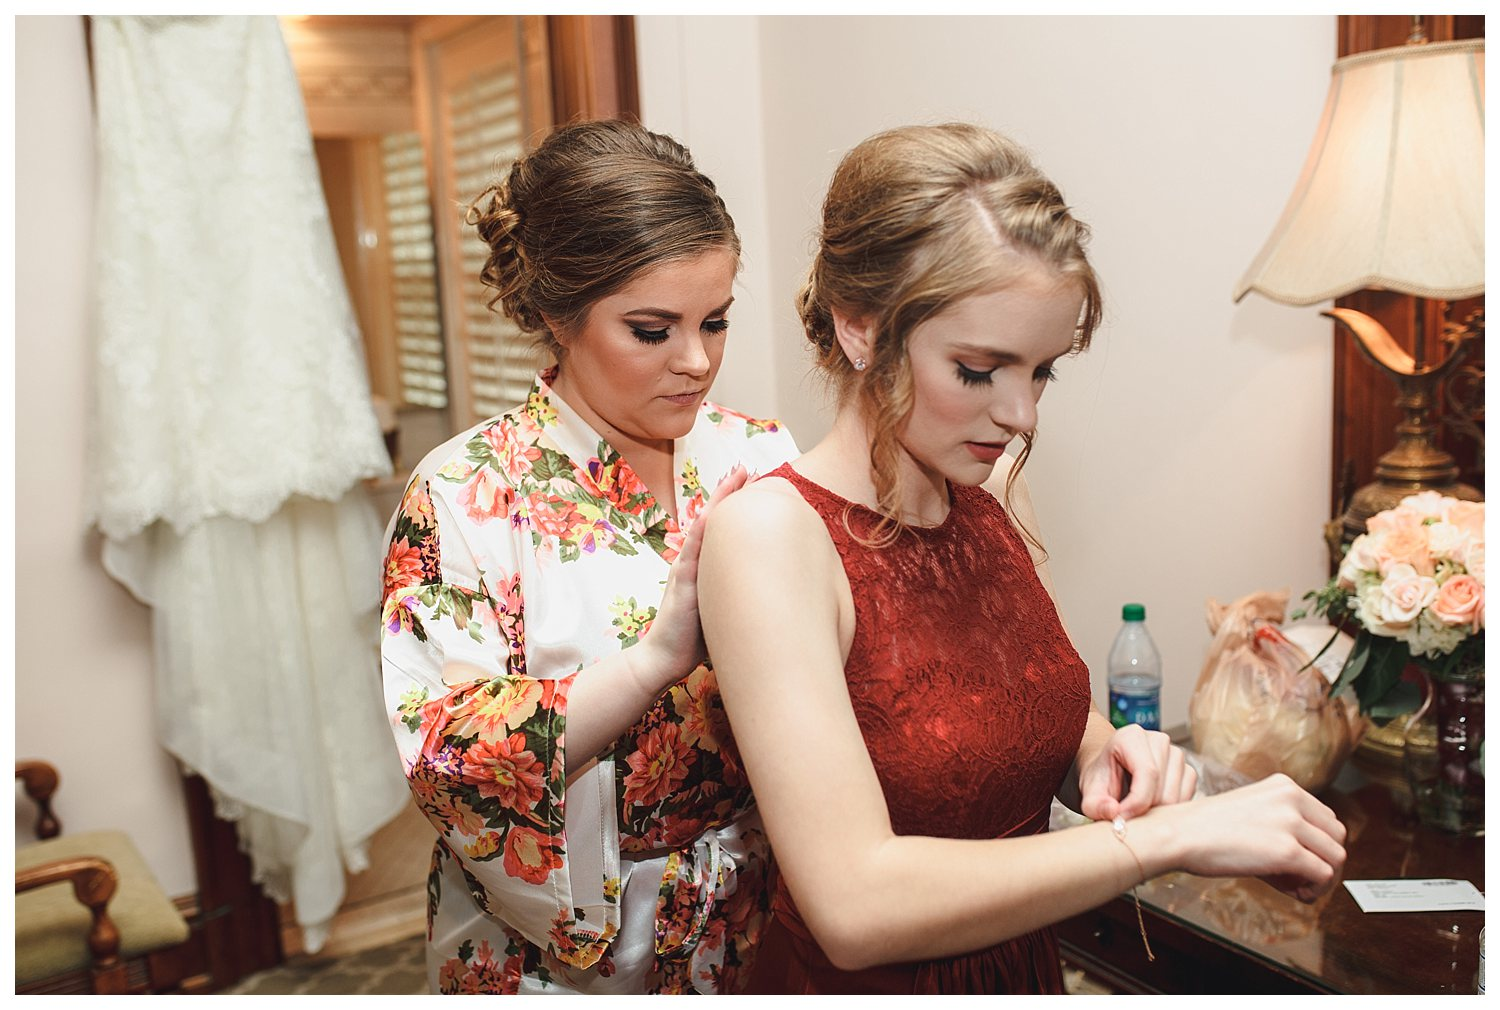 Kelsey_Diane_Photography_Loose_Mansion_Wedding_Photography_Kansas_City_Victor_Lyndsay_0113.jpg